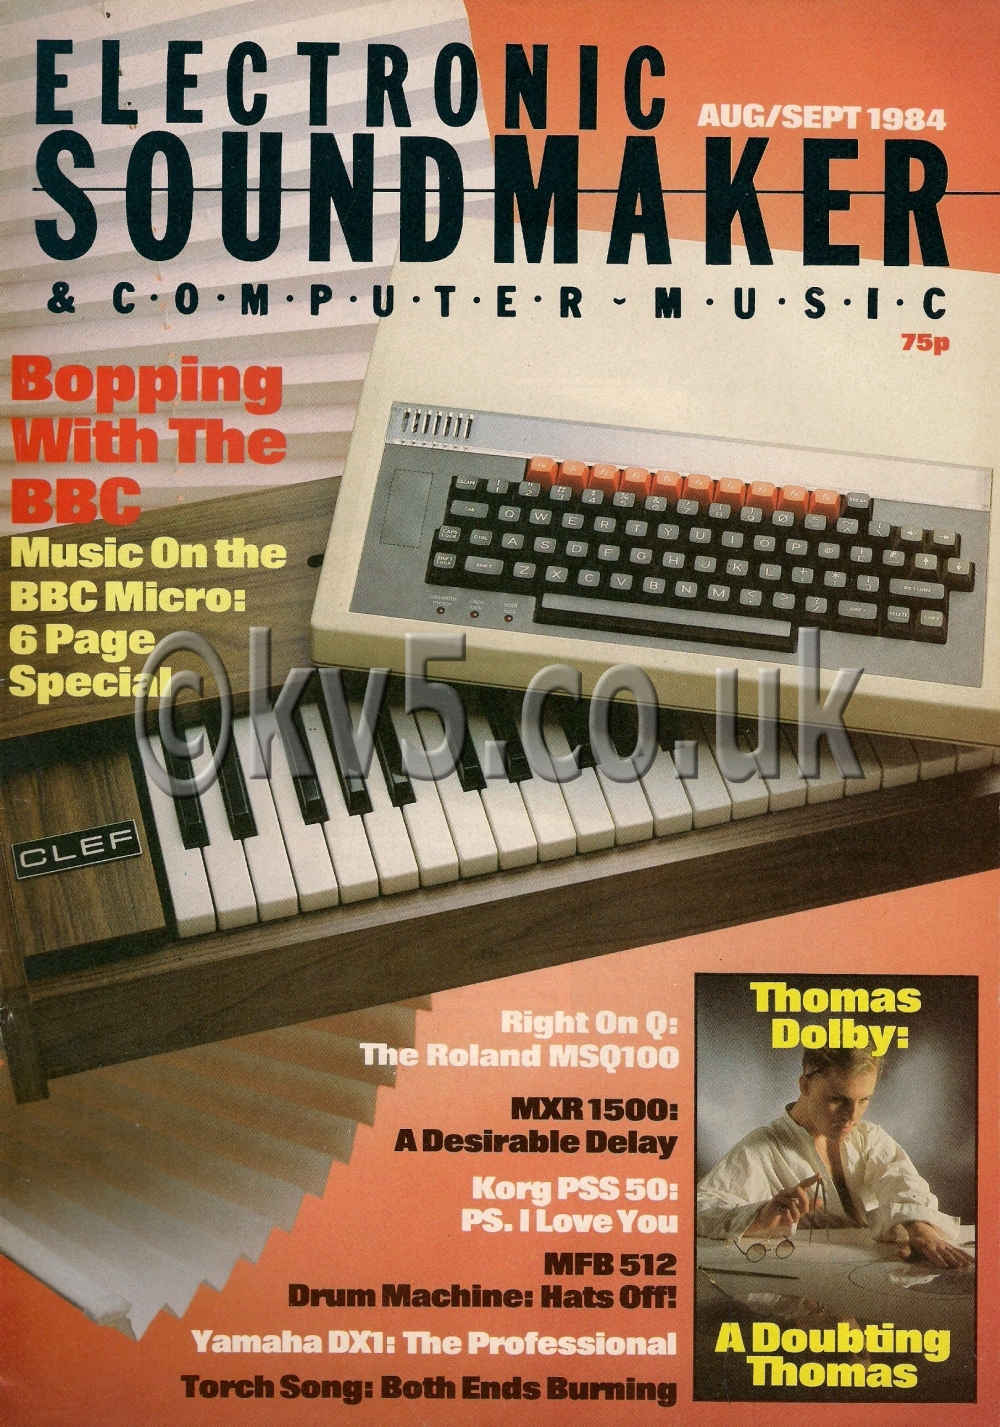 Electronic Soundmaker Aug-Sept 1984